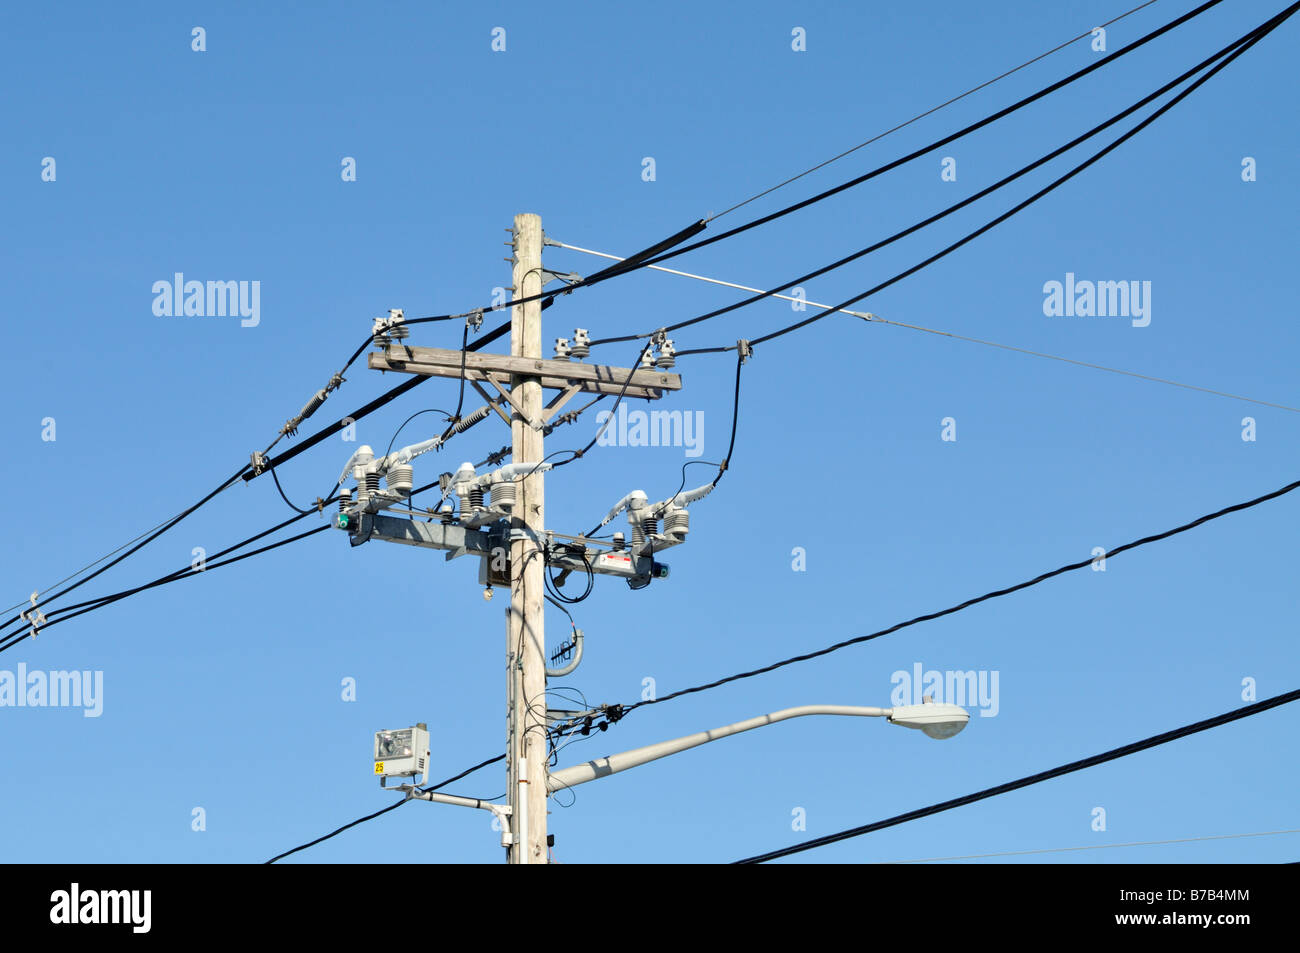 Telephone and electric pole with wires insulators cables and street ...